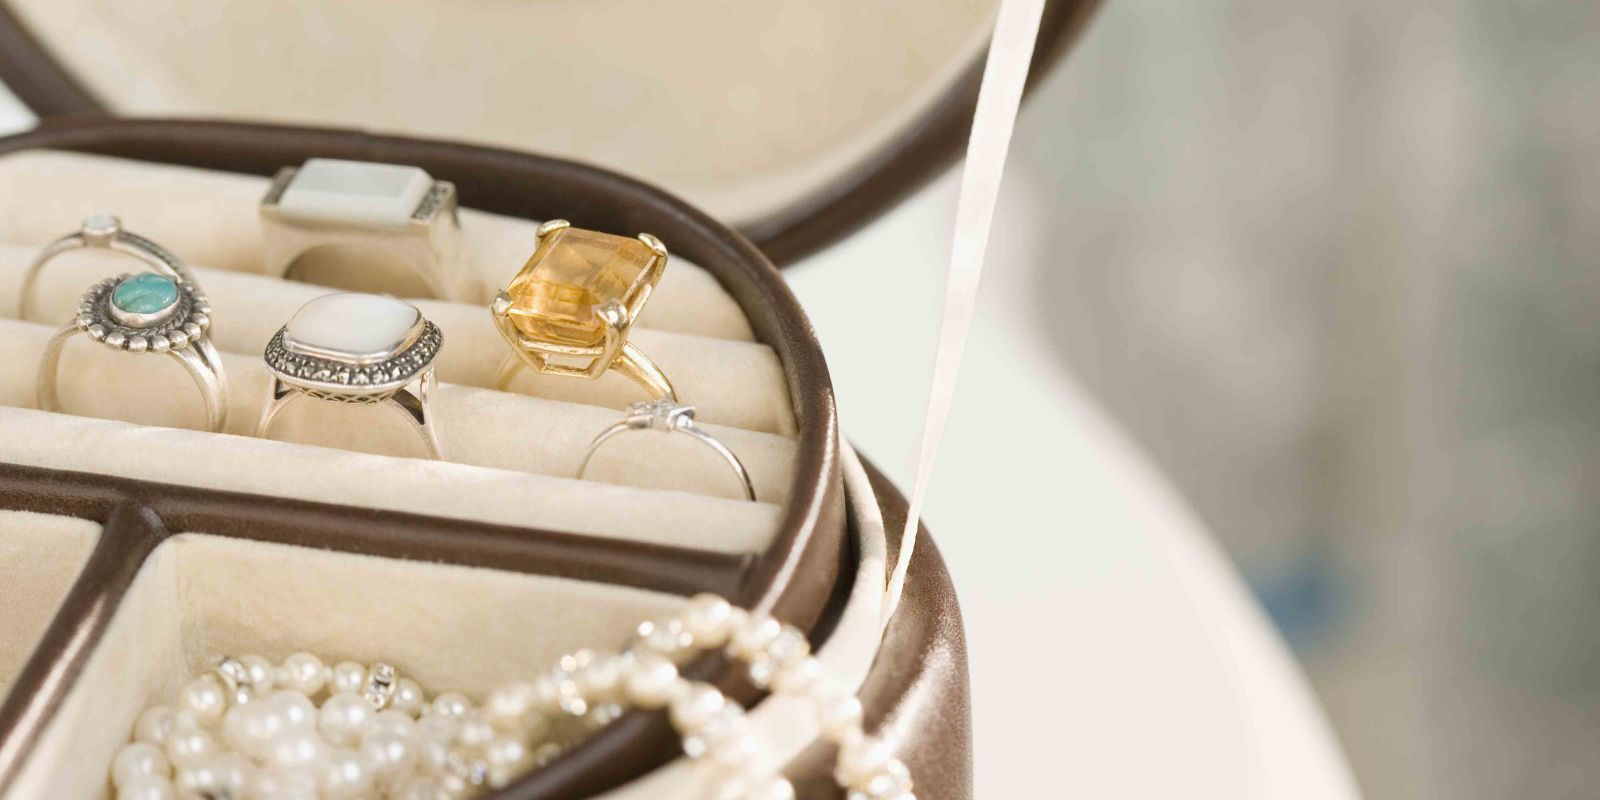 how to clean jewelry at home best ways for cleaning